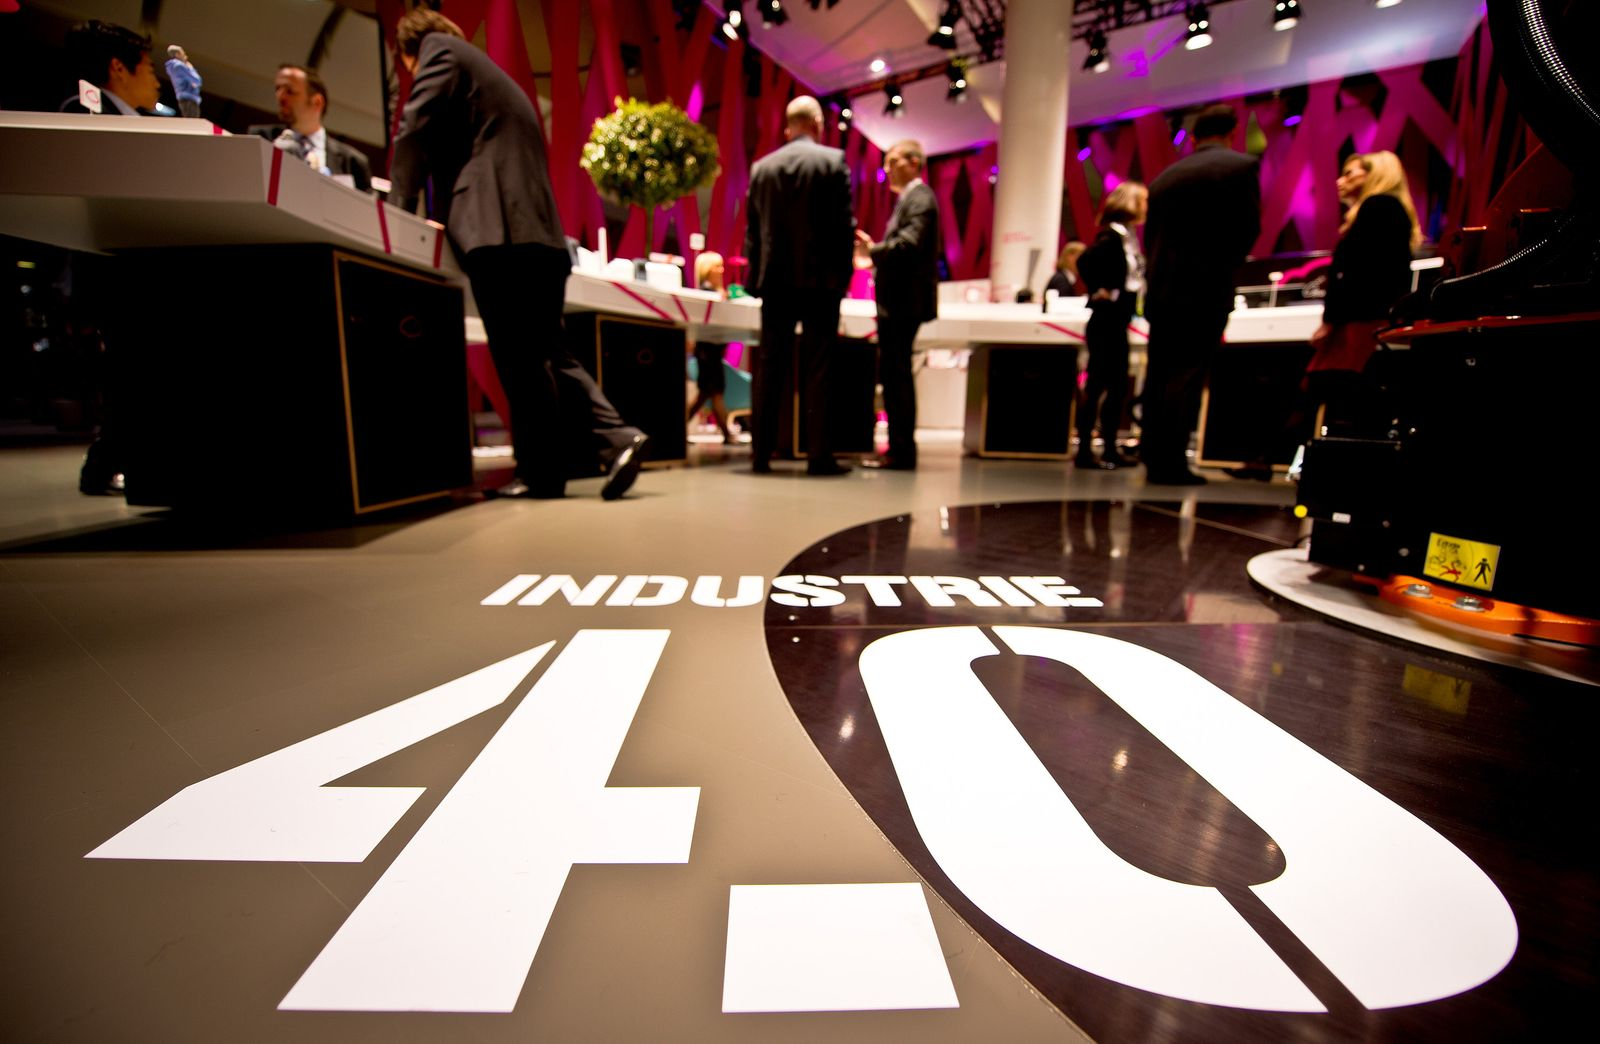 Hannover Messe / Industrie 4.0